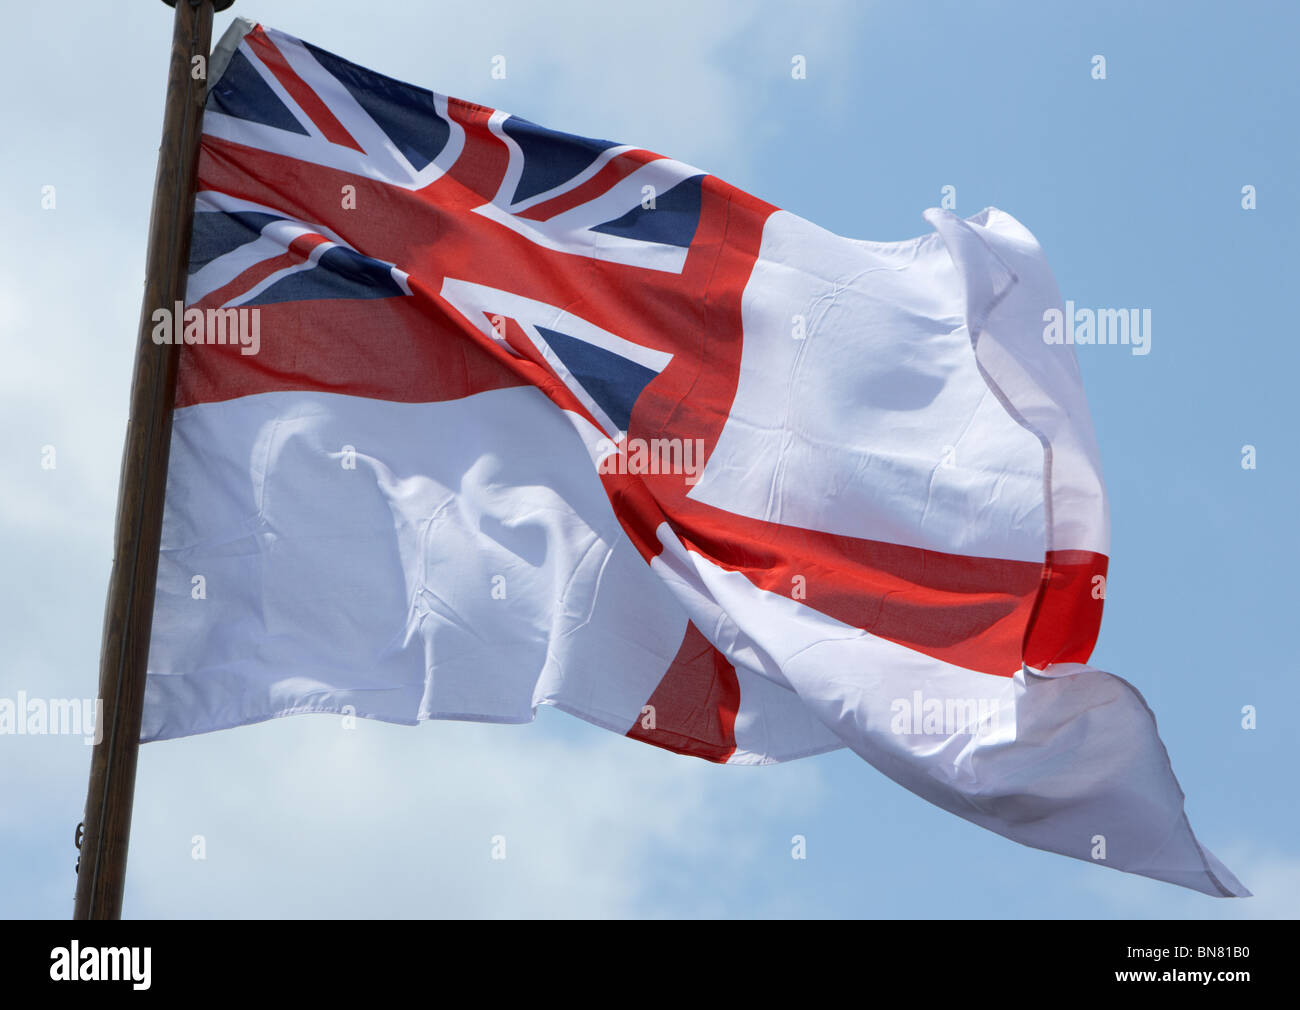 Royal Navy white ensign as flown from the back of a warship in the UK - Stock Image